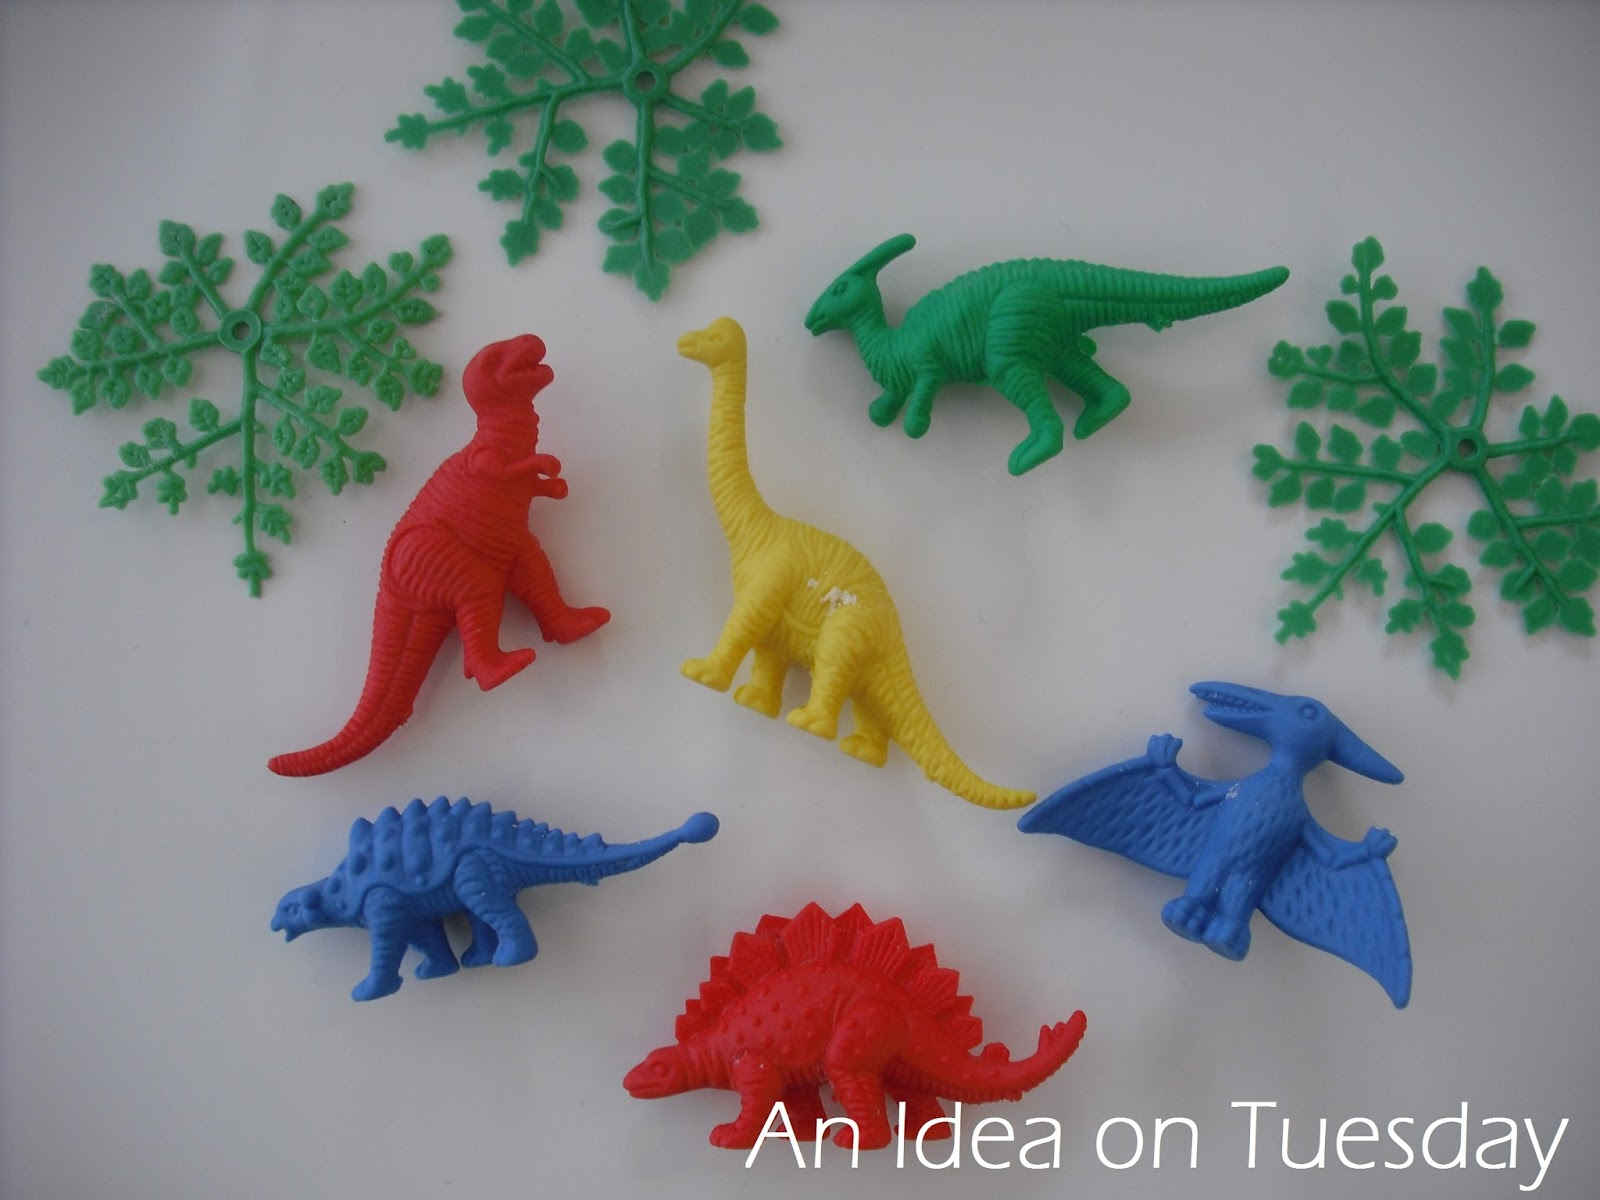 an idea on tuesday dinosaurs on tuesday